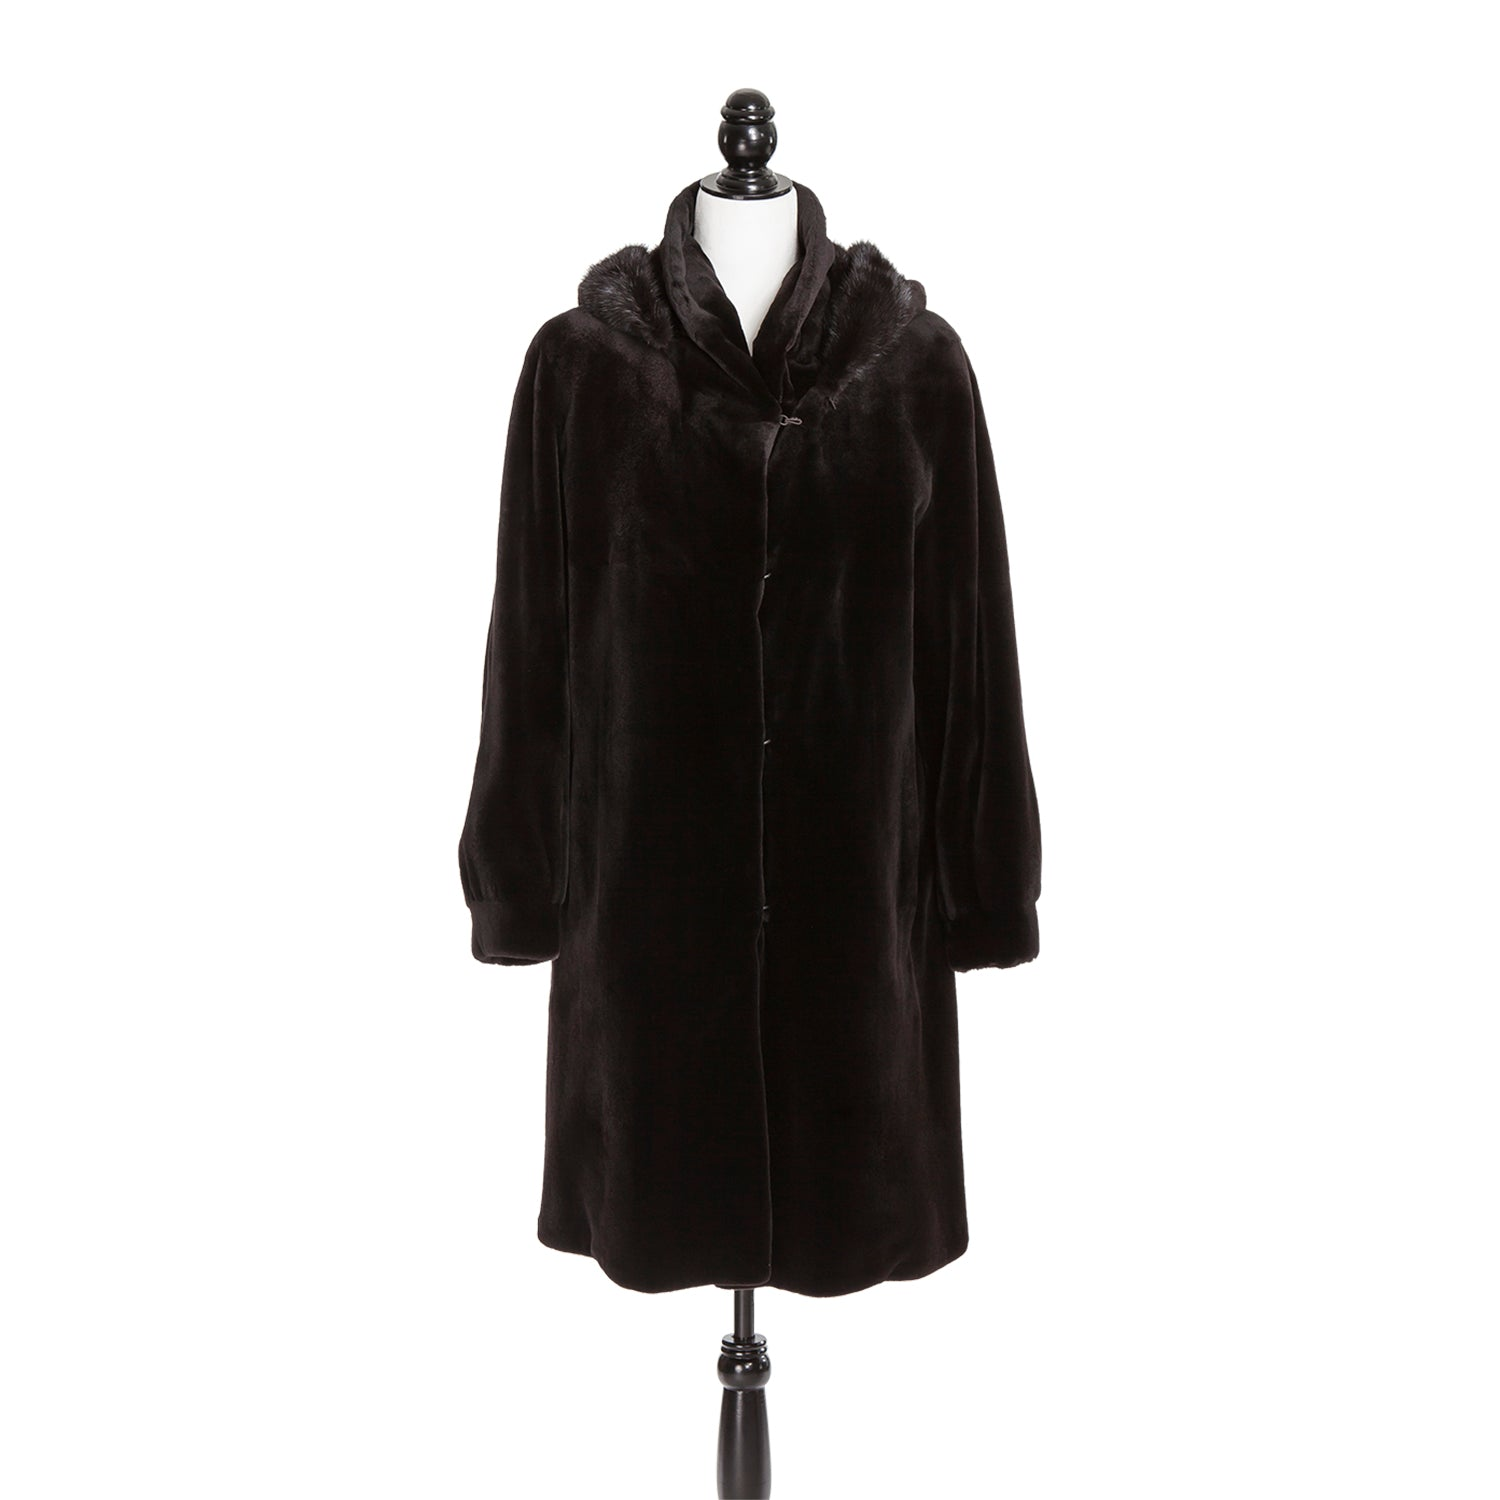 Brown Sheared Mink Coat with Detachable Hood Reversible to Rainwear